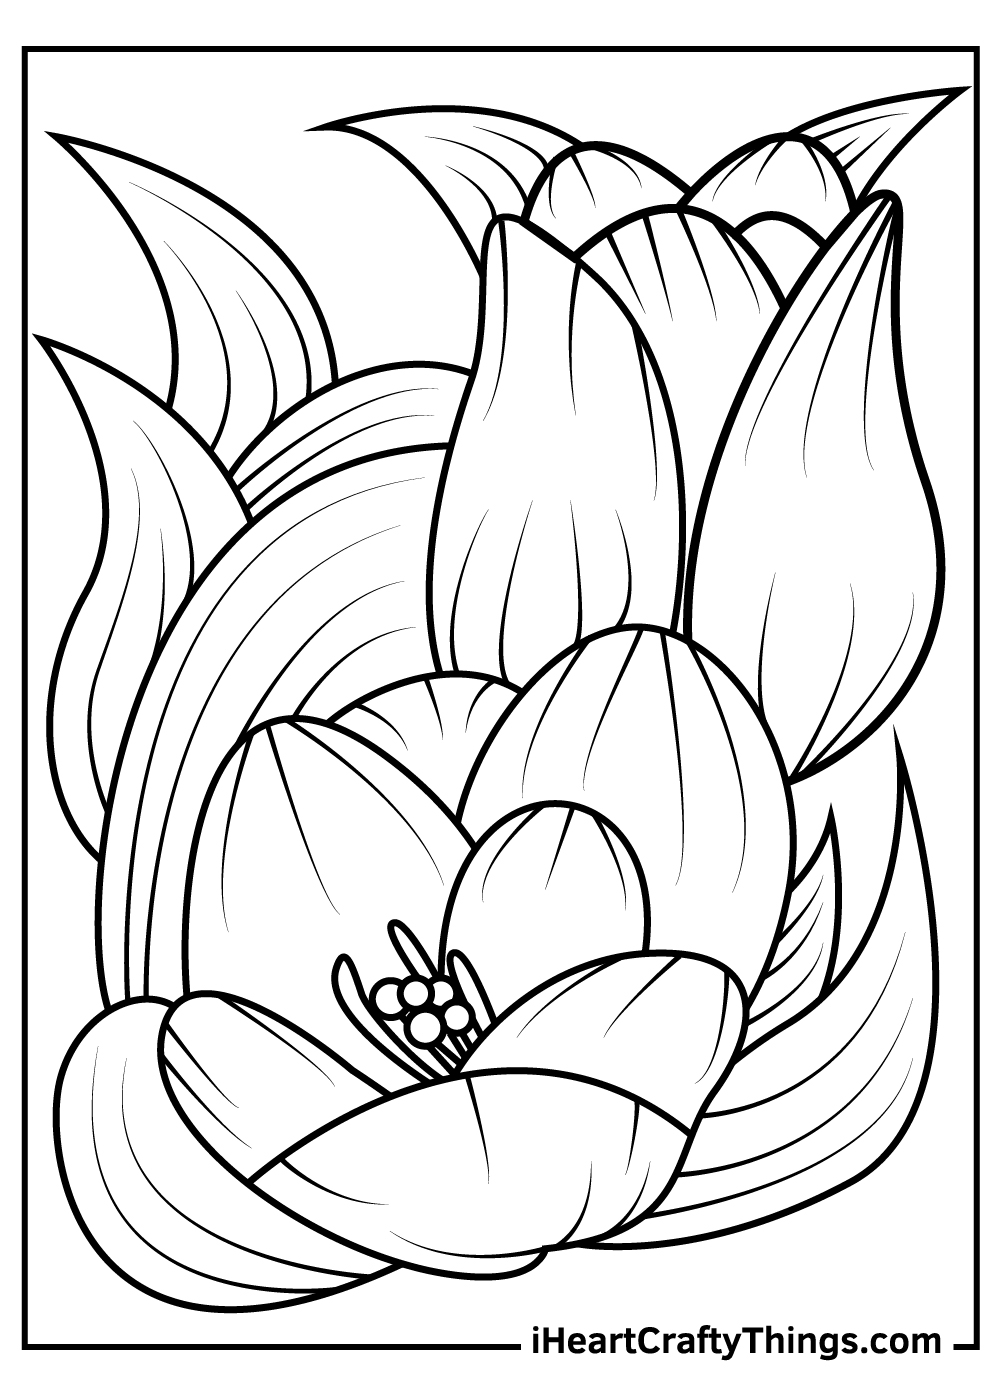 printable tulip coloring pages for kids